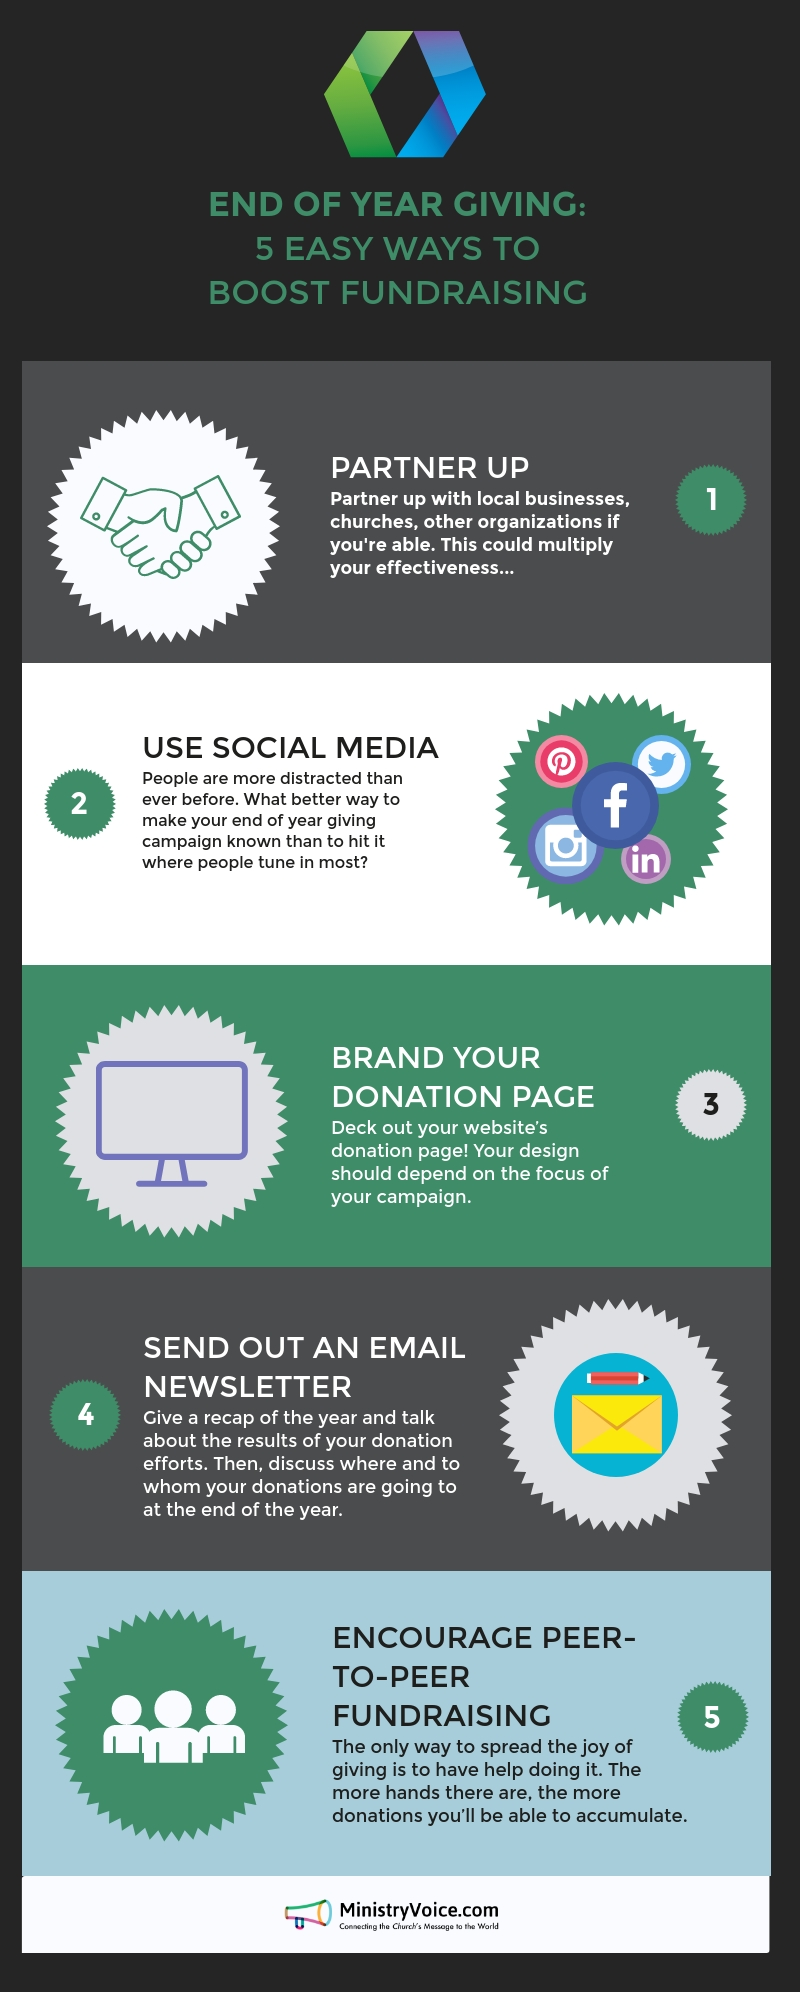 end-of-year fundraising infographic